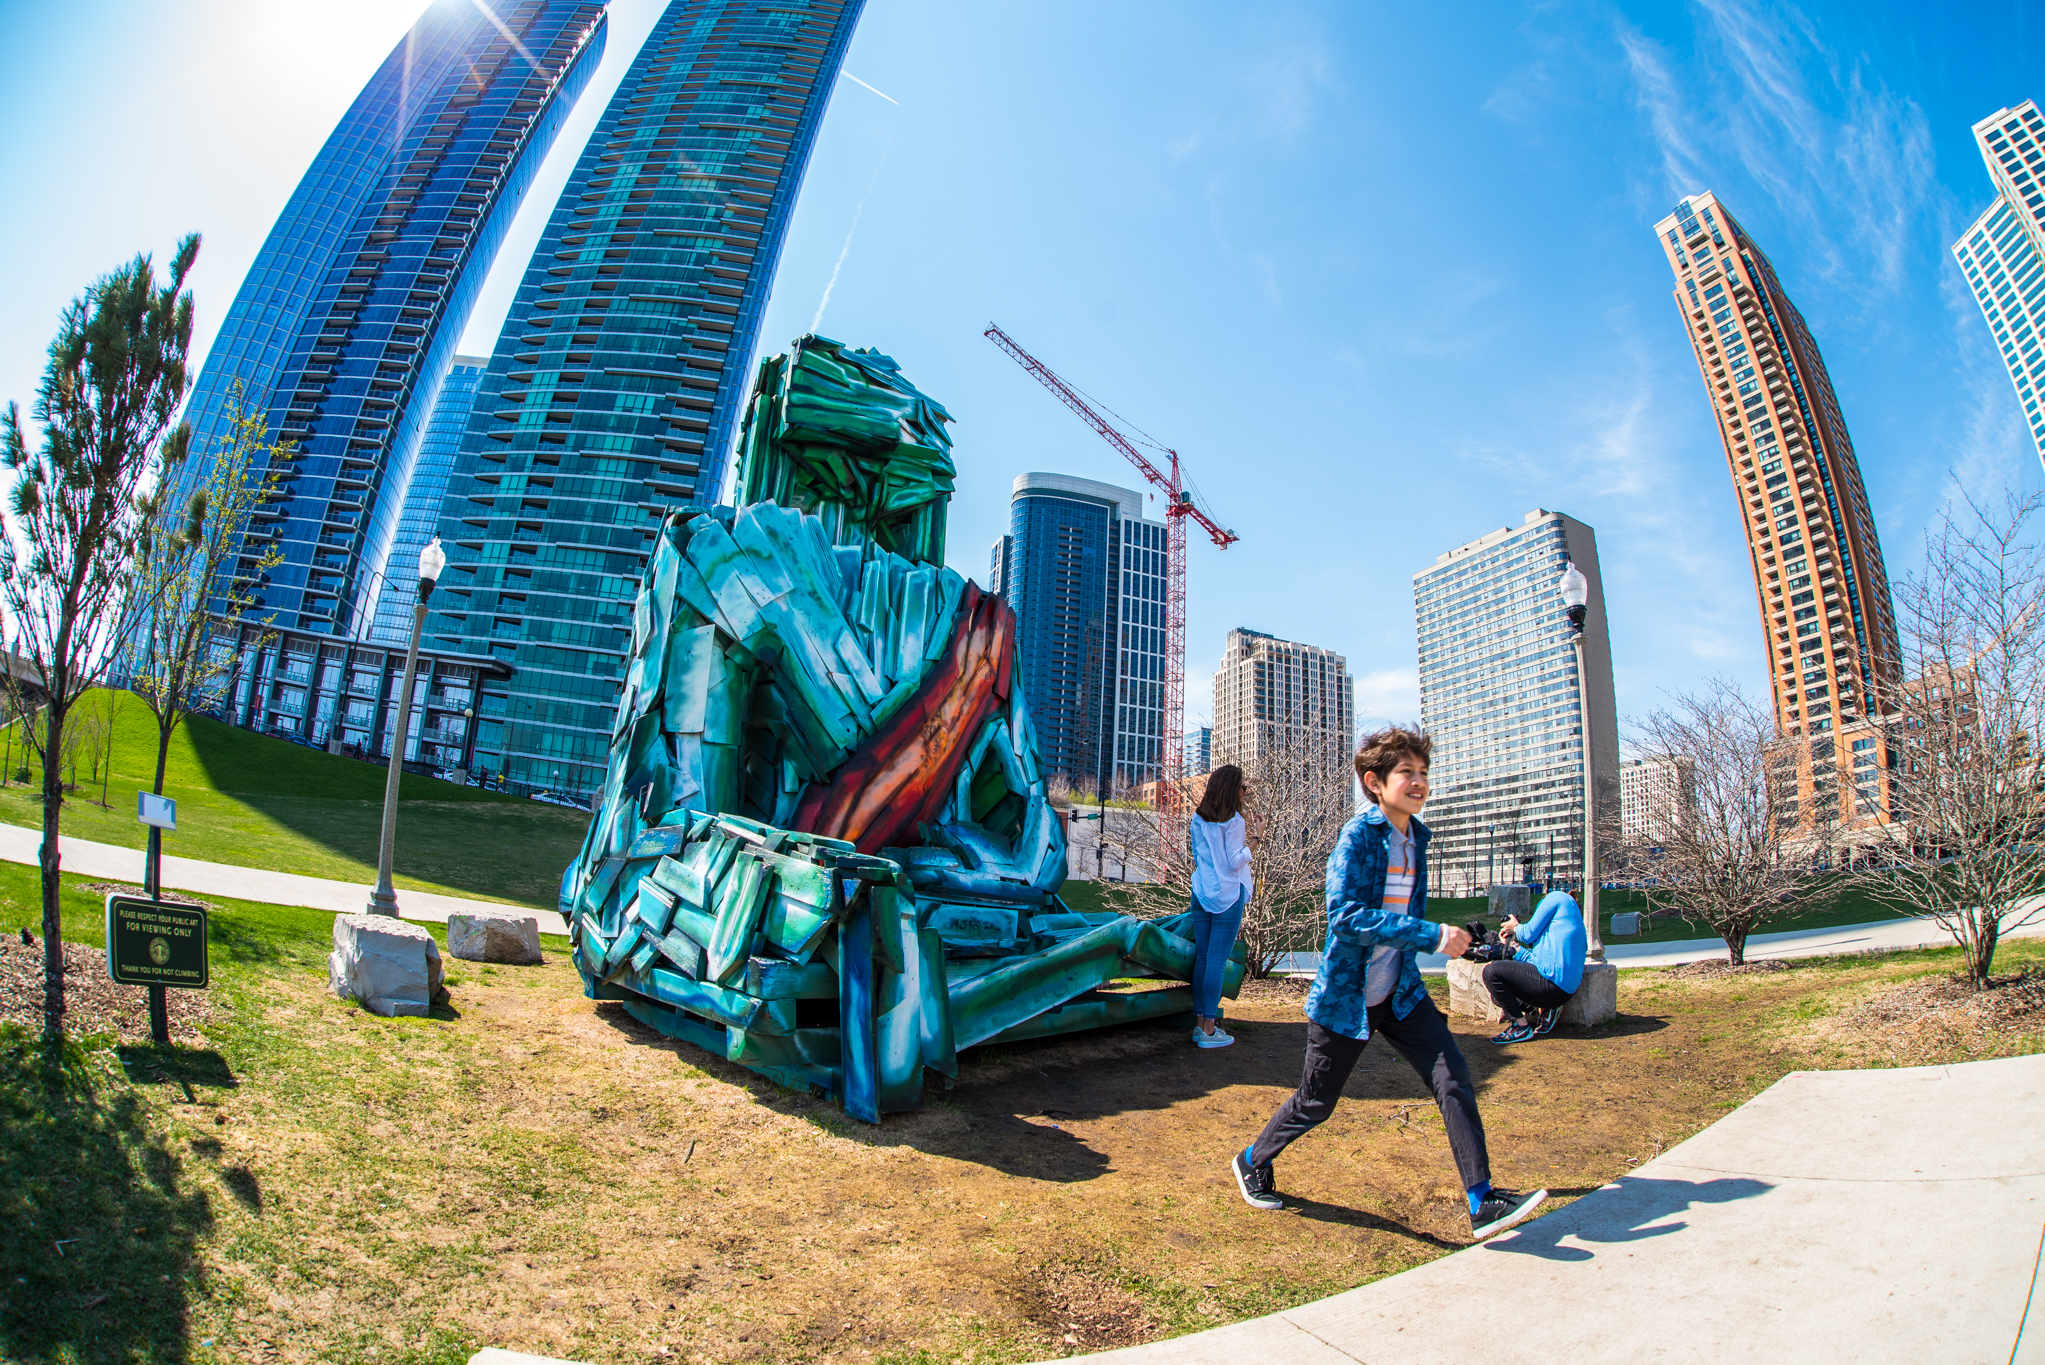 Where to find Chicago's latest public art installations